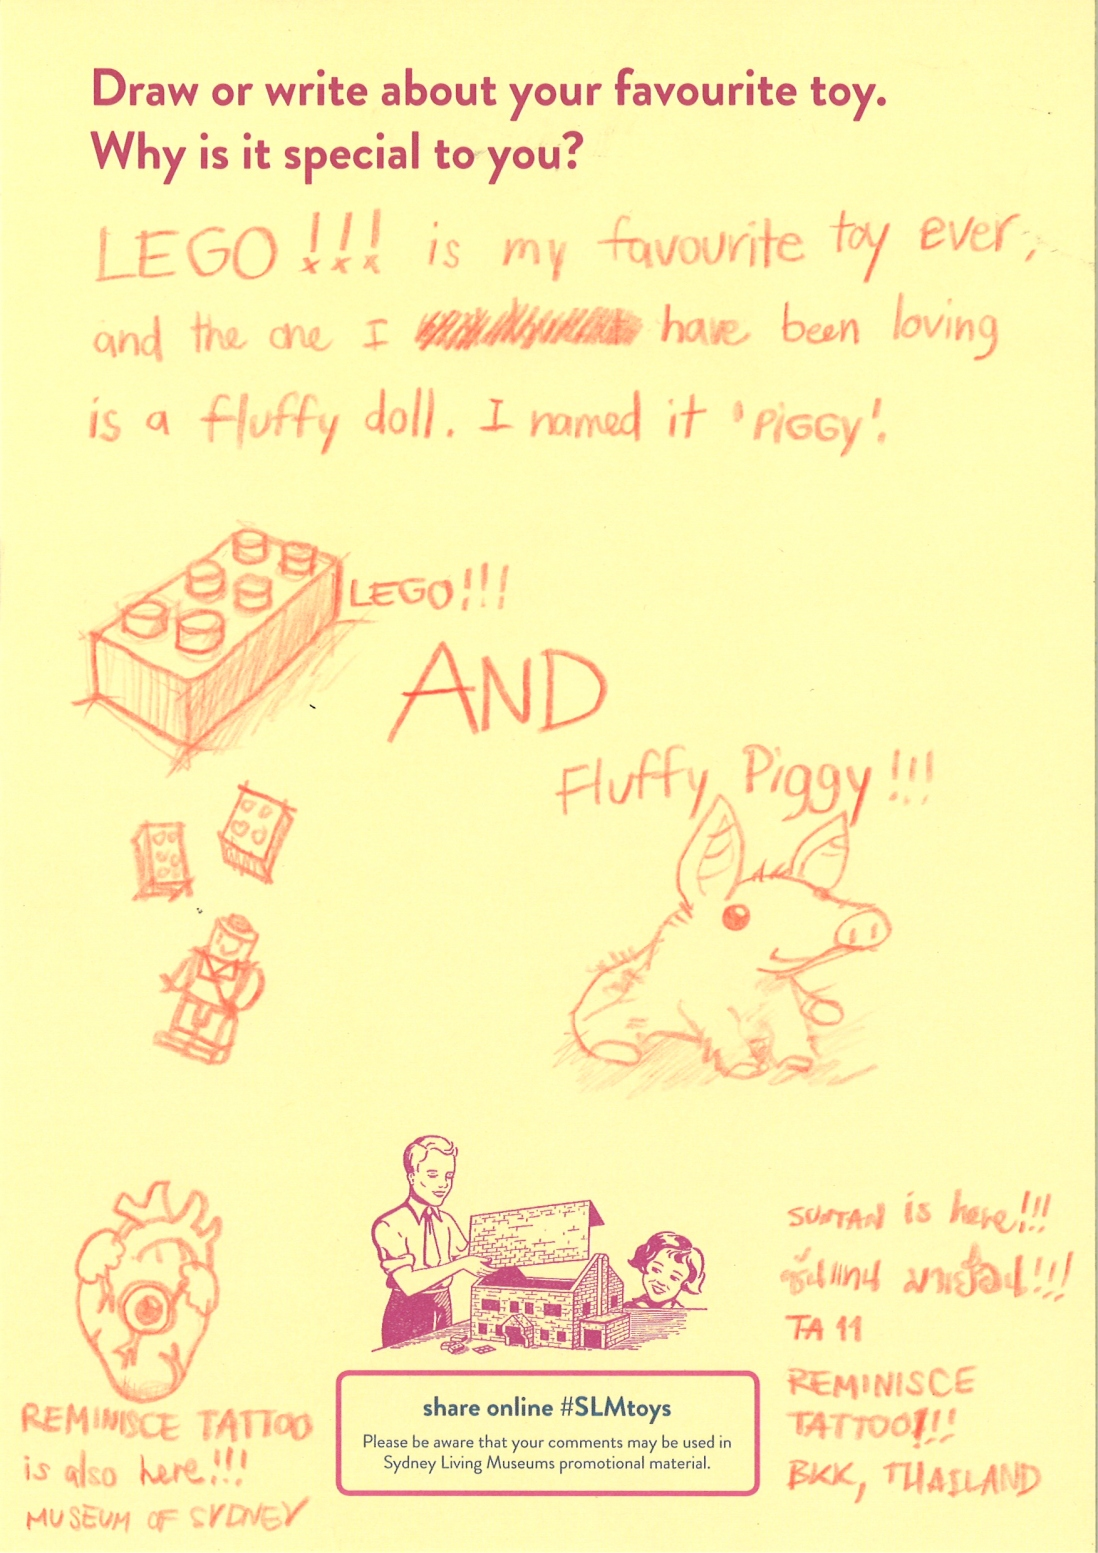 A picture of lego and a fluffy pig